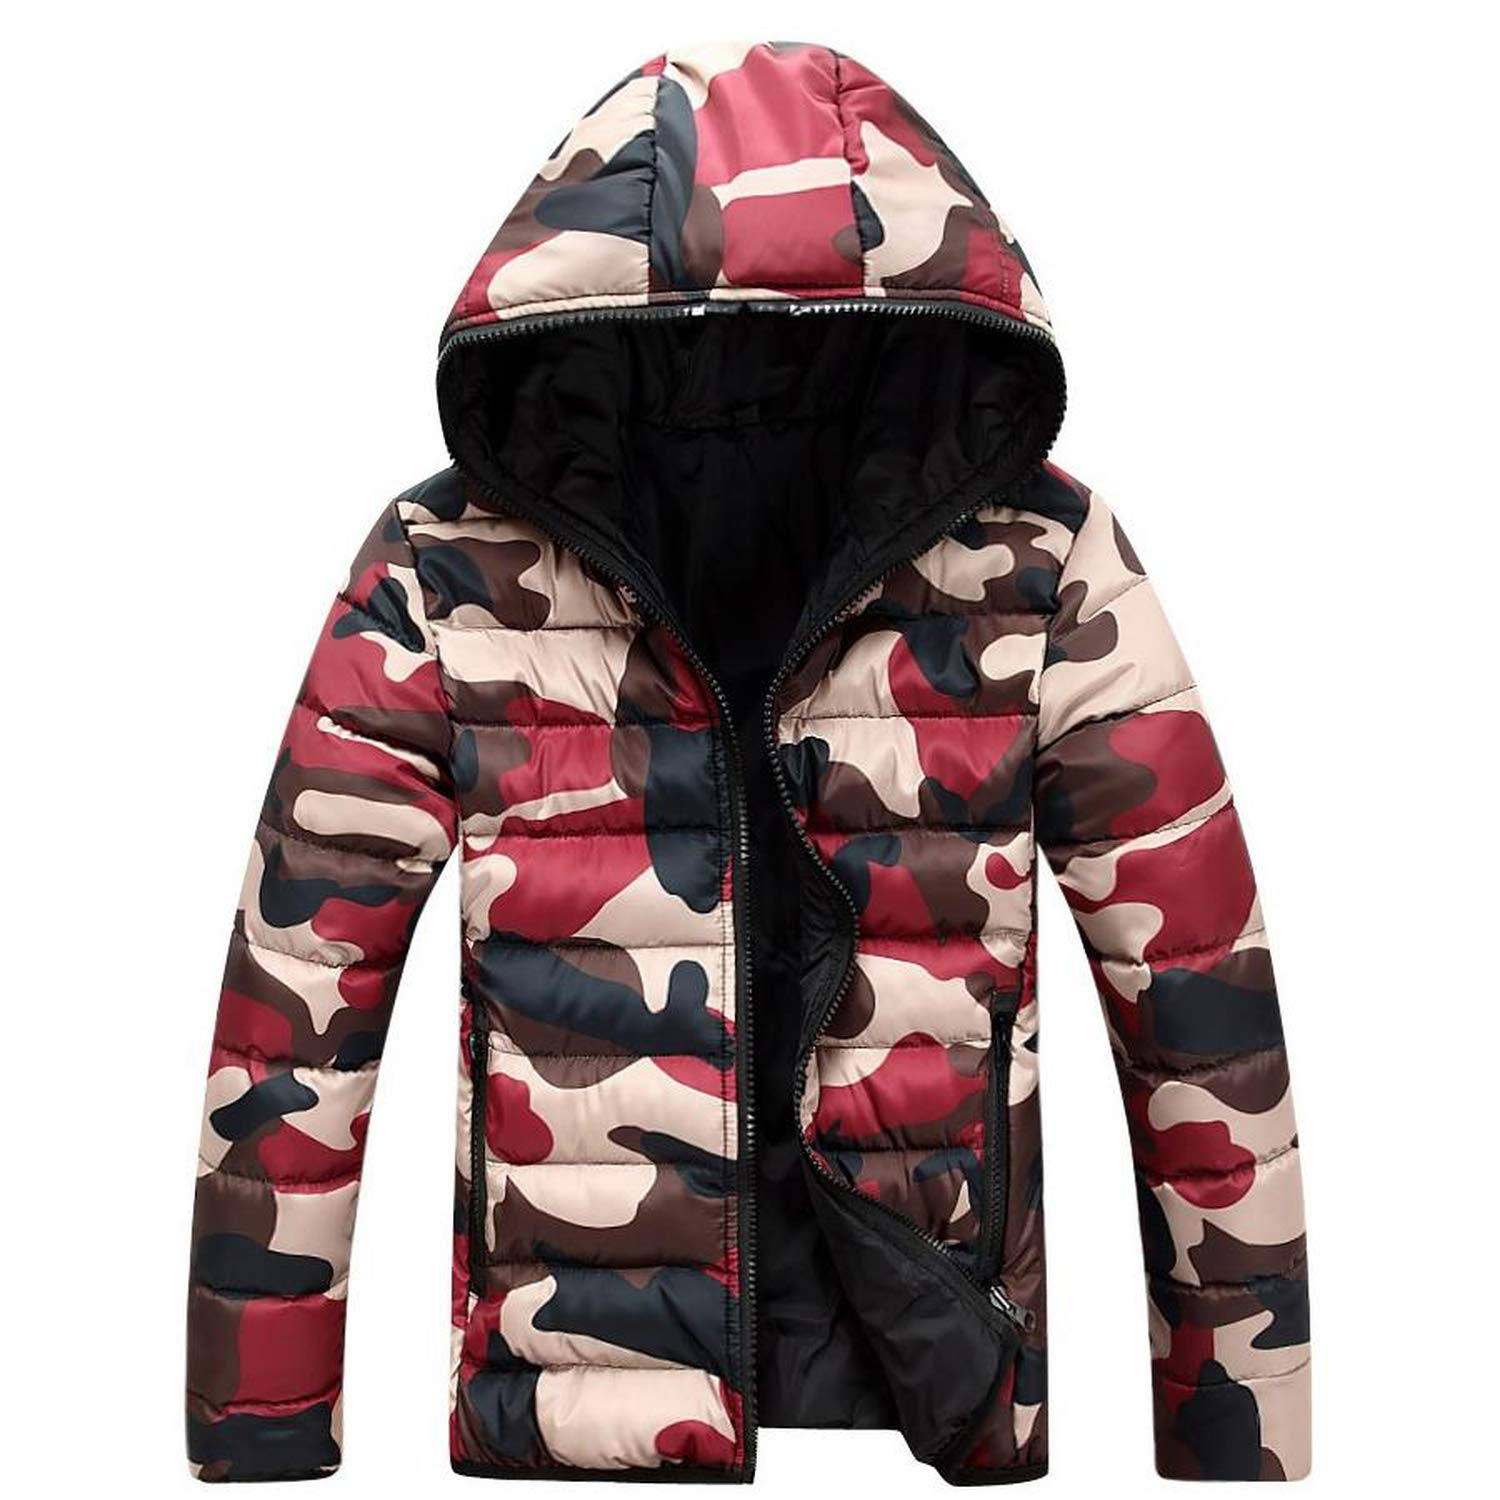 Amazon.com: Winter Jacket Mens Camouflage Soft Shell Mens ...